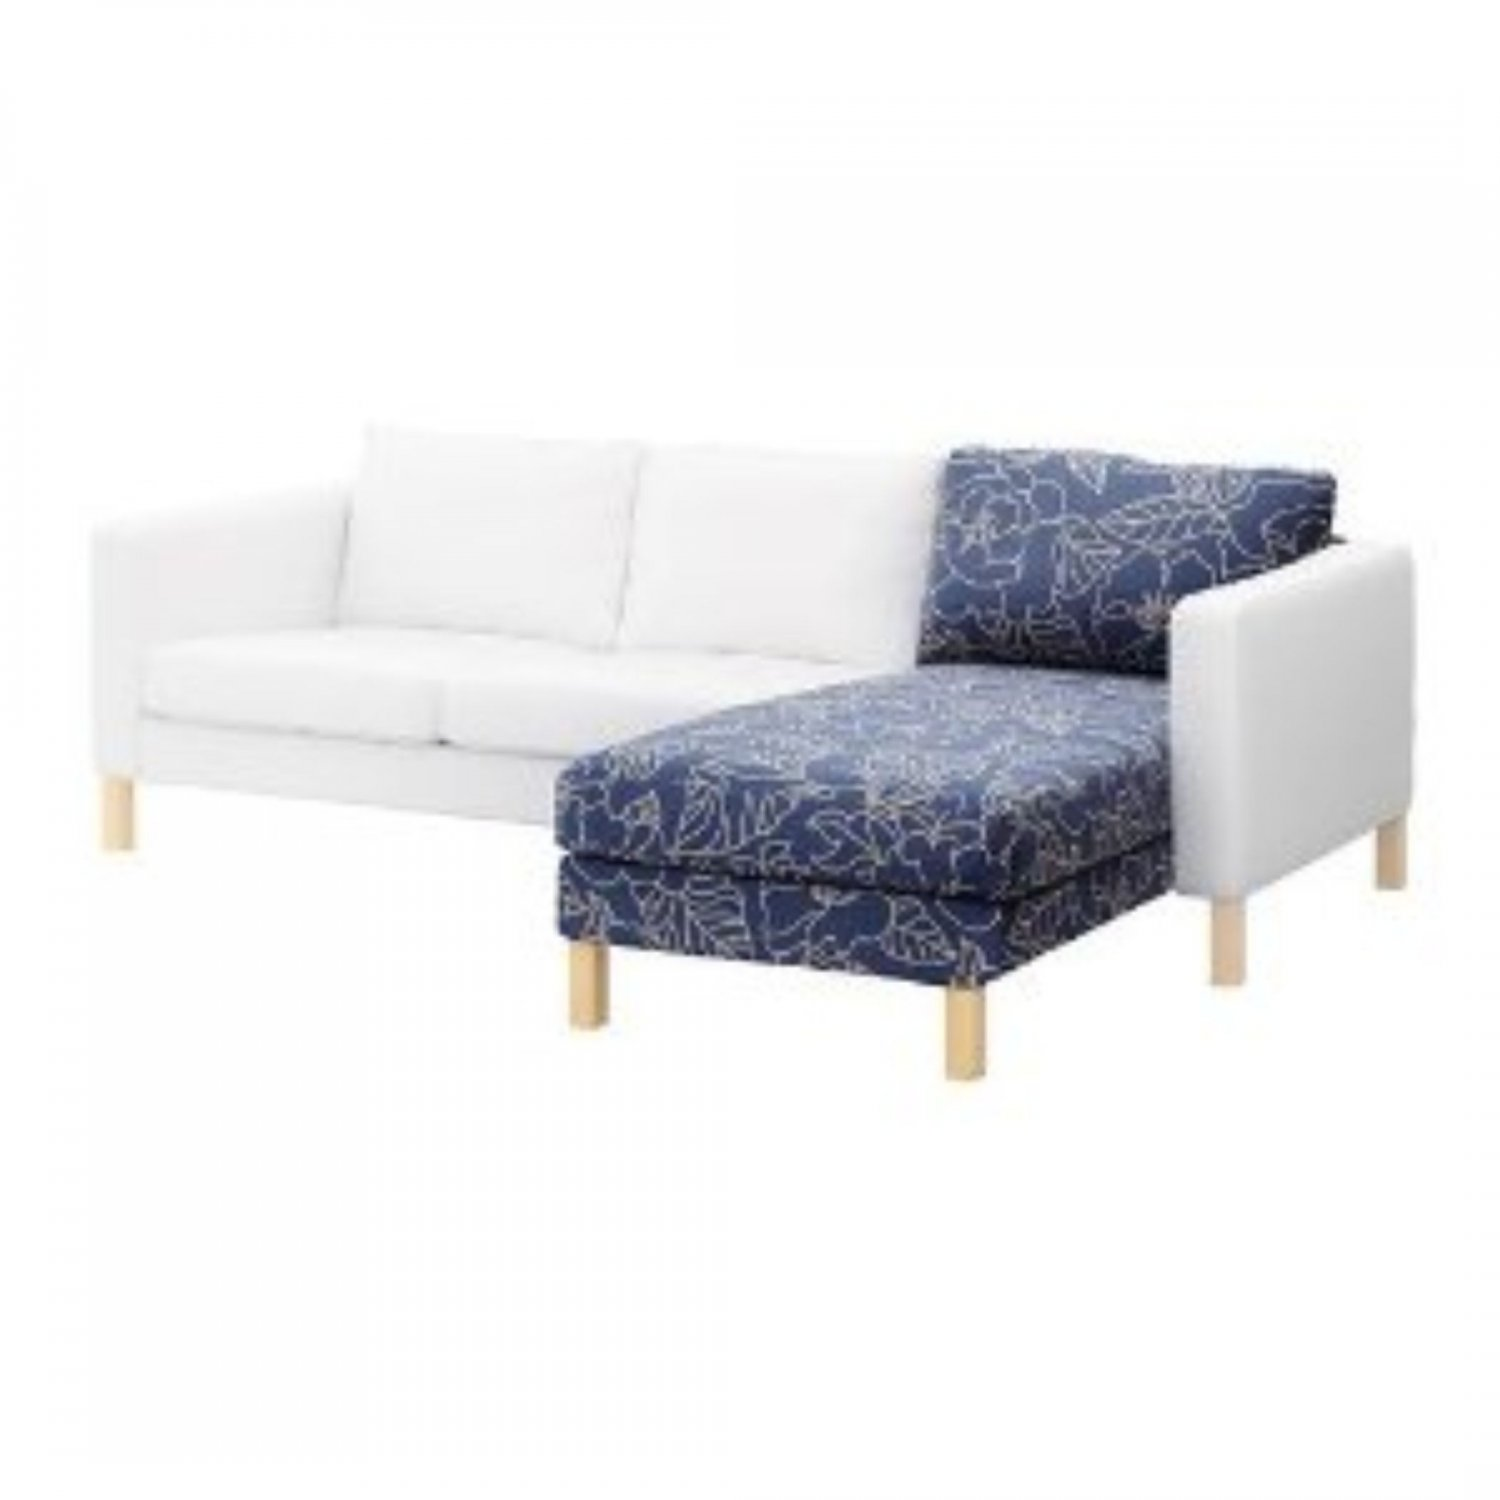 karlstad armchair cover uk plastic chairs for sale ikea chaise longue bladåker blue beige